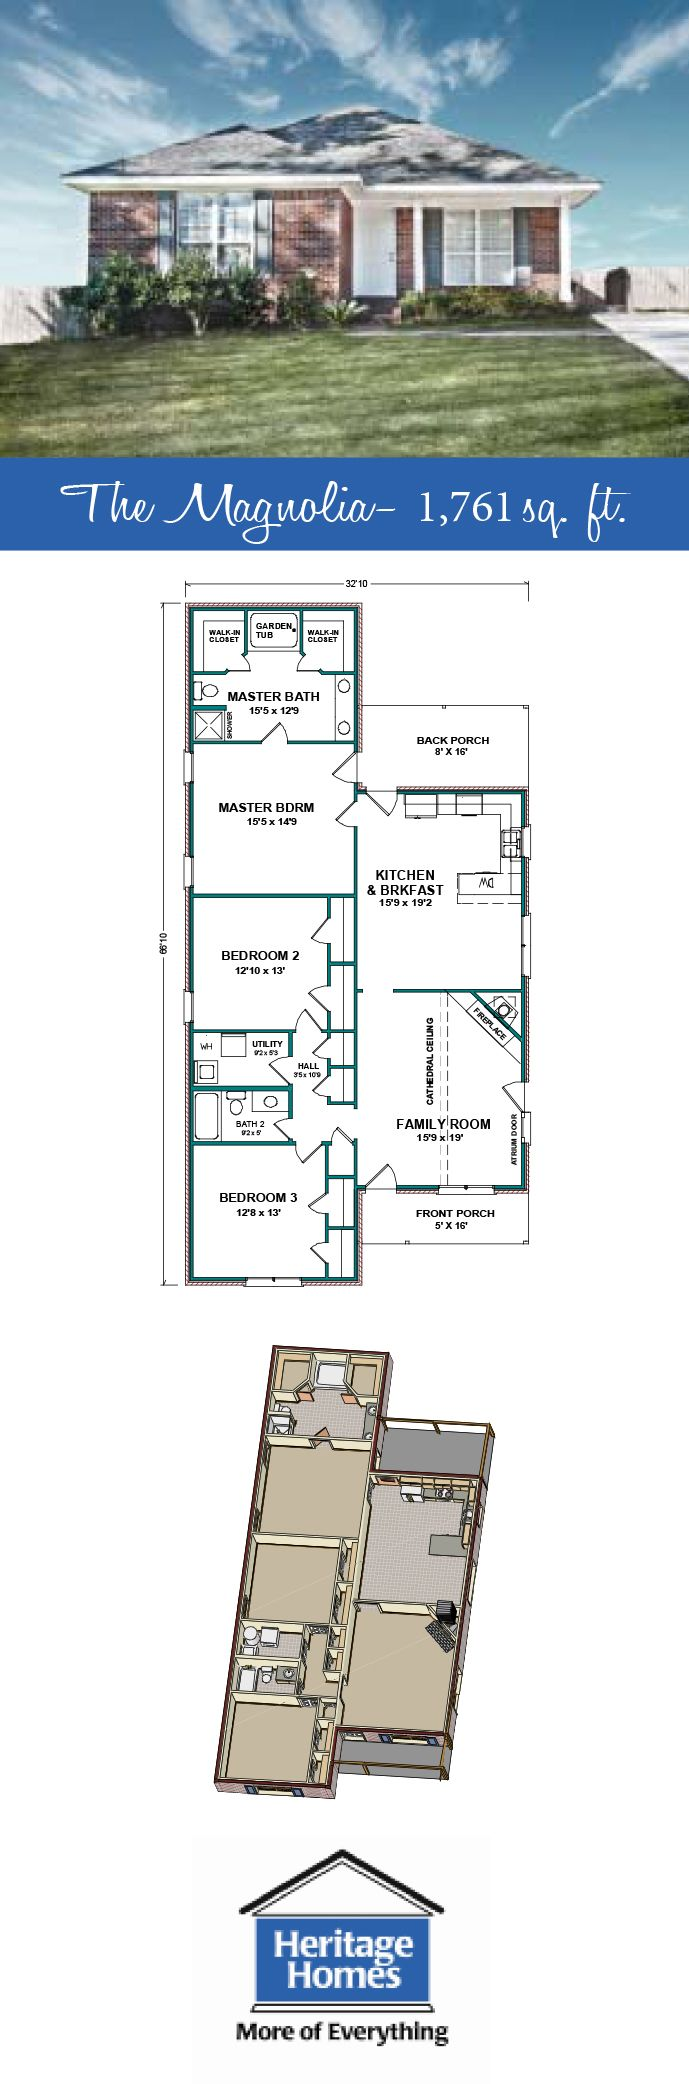 1 700 1 800 Sq Ft Narrow Lot Floor Plan The Magnolia Is A 1 761 Sq Ft Home With 3 Beds 2 Baths Narrow Lot Plan House Plans Floor Plans House Floor Plans